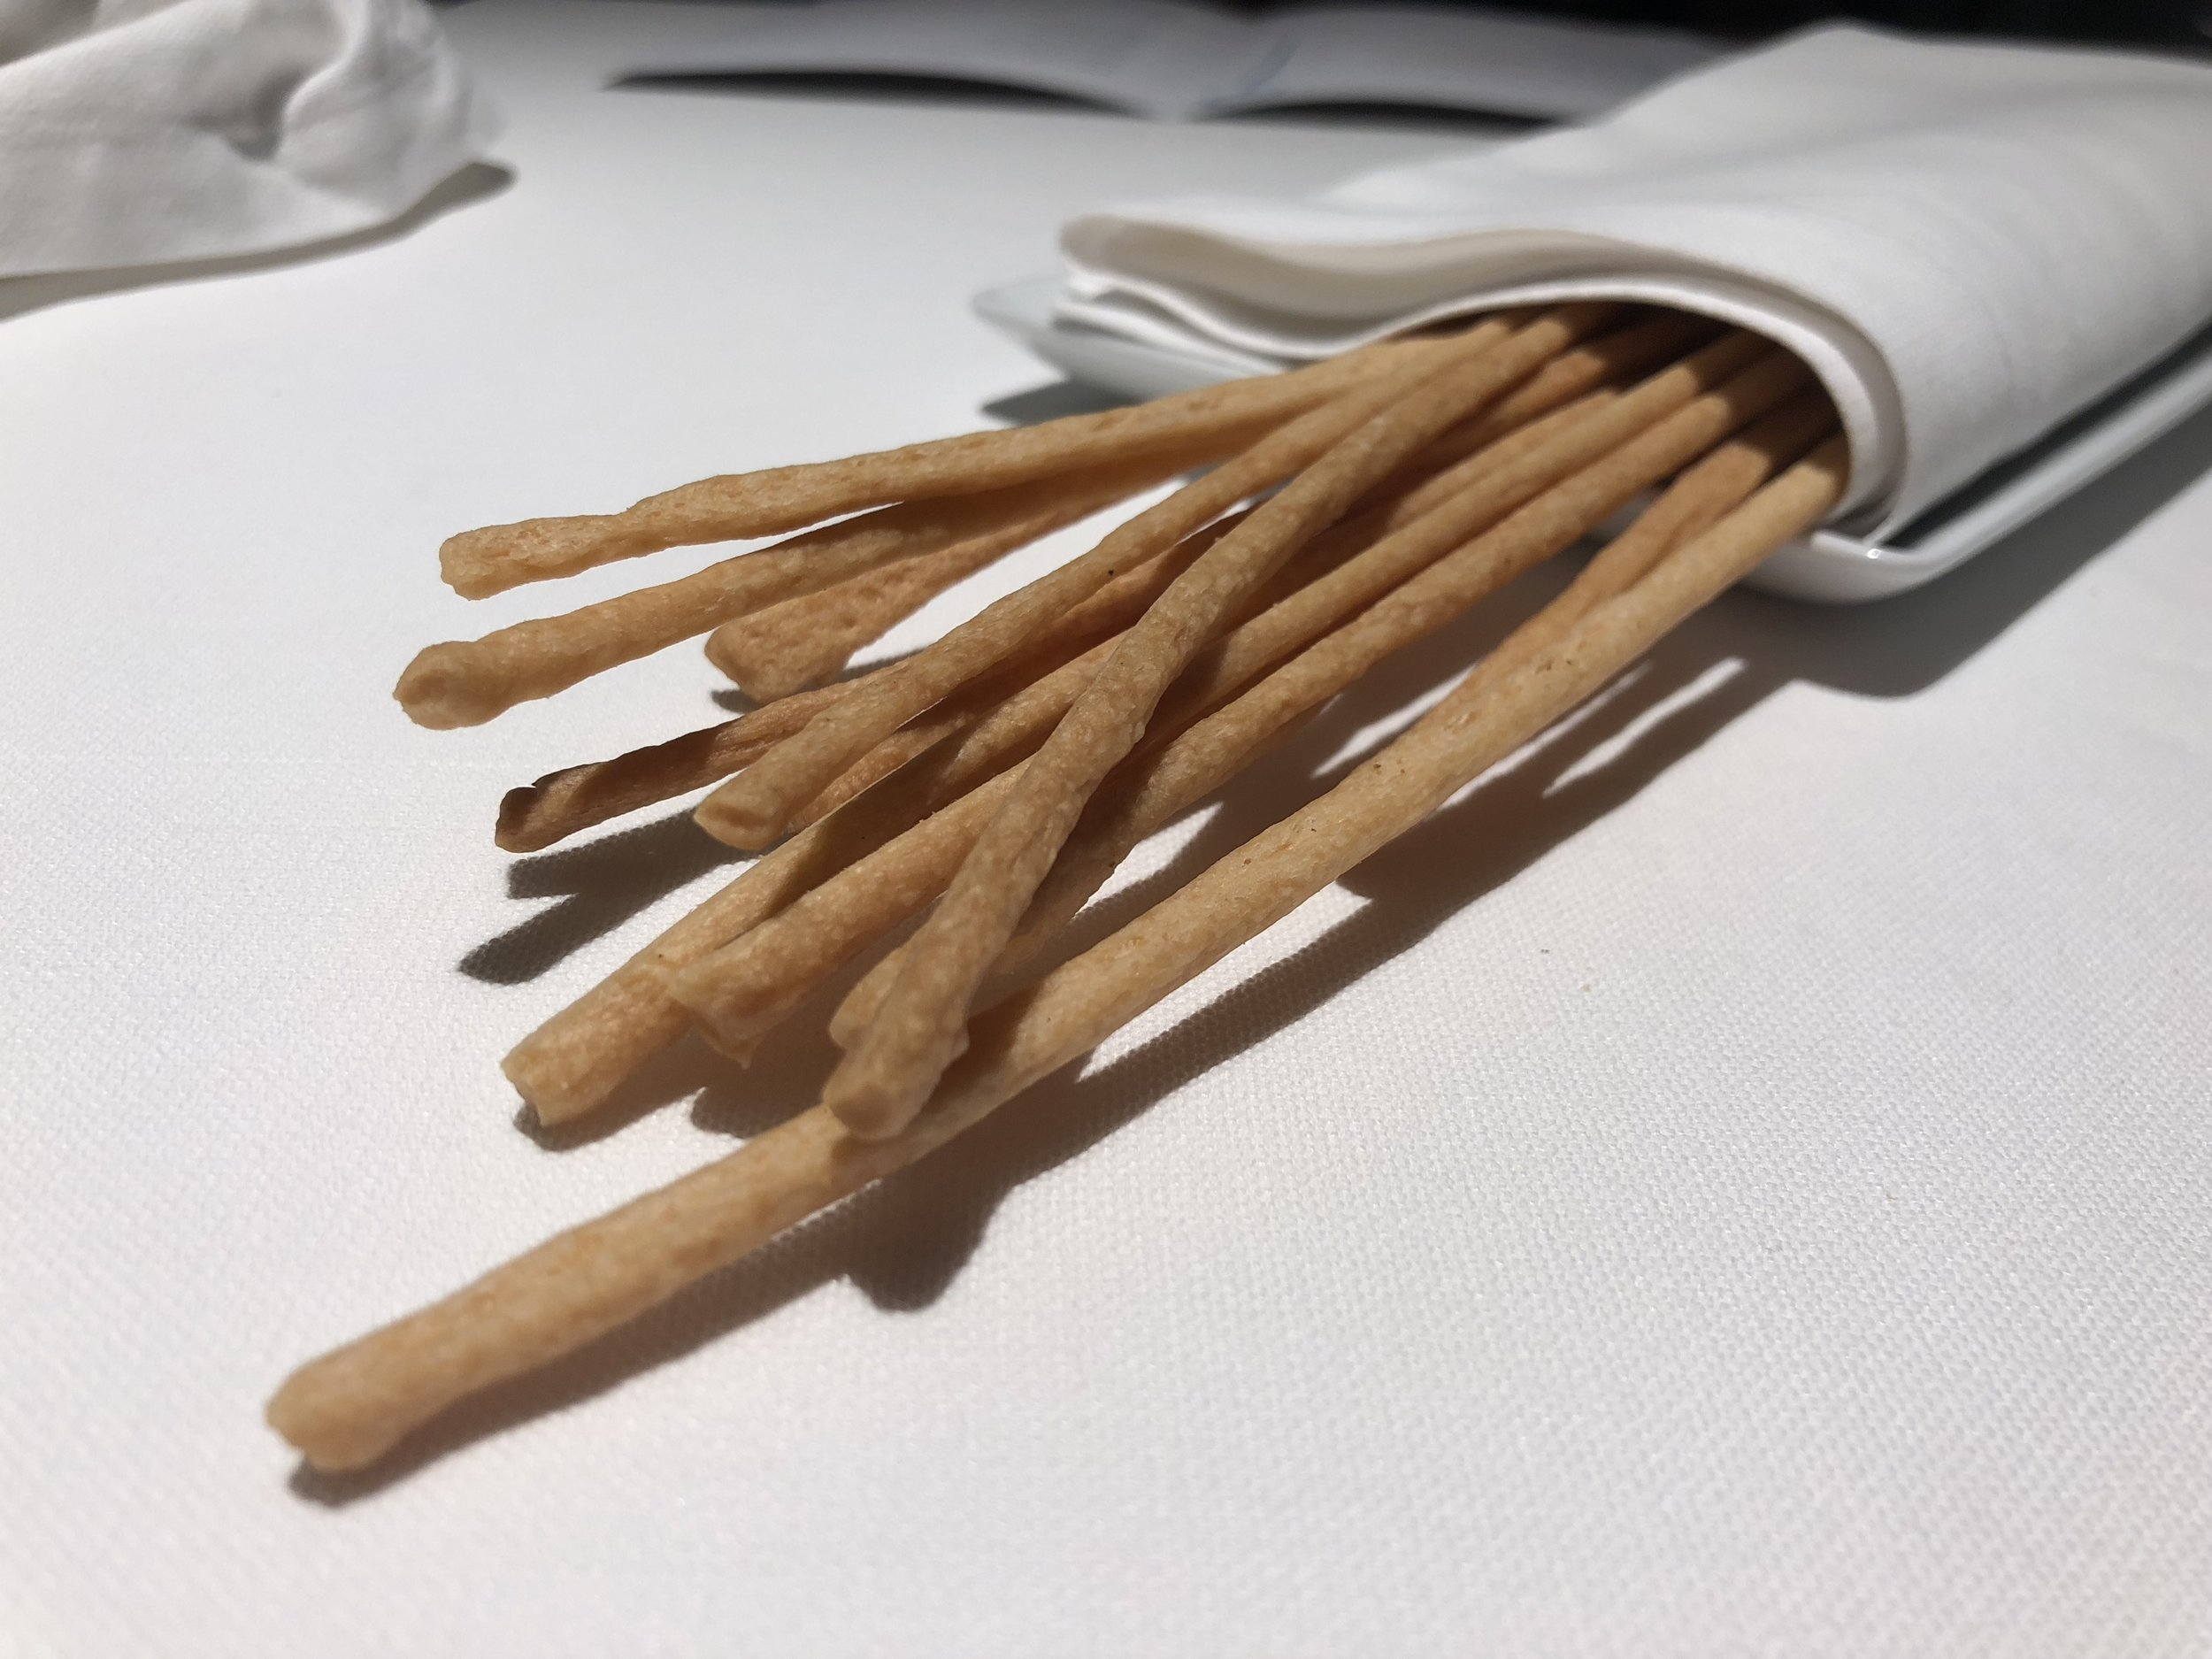 bread sticks - They brought these out as if to say, okay we gave you the old traditional shitty bread so now we're going to give you something good. These breadsticks were excellent, made with olive oil and parmesan. Crunchy and flavorful.